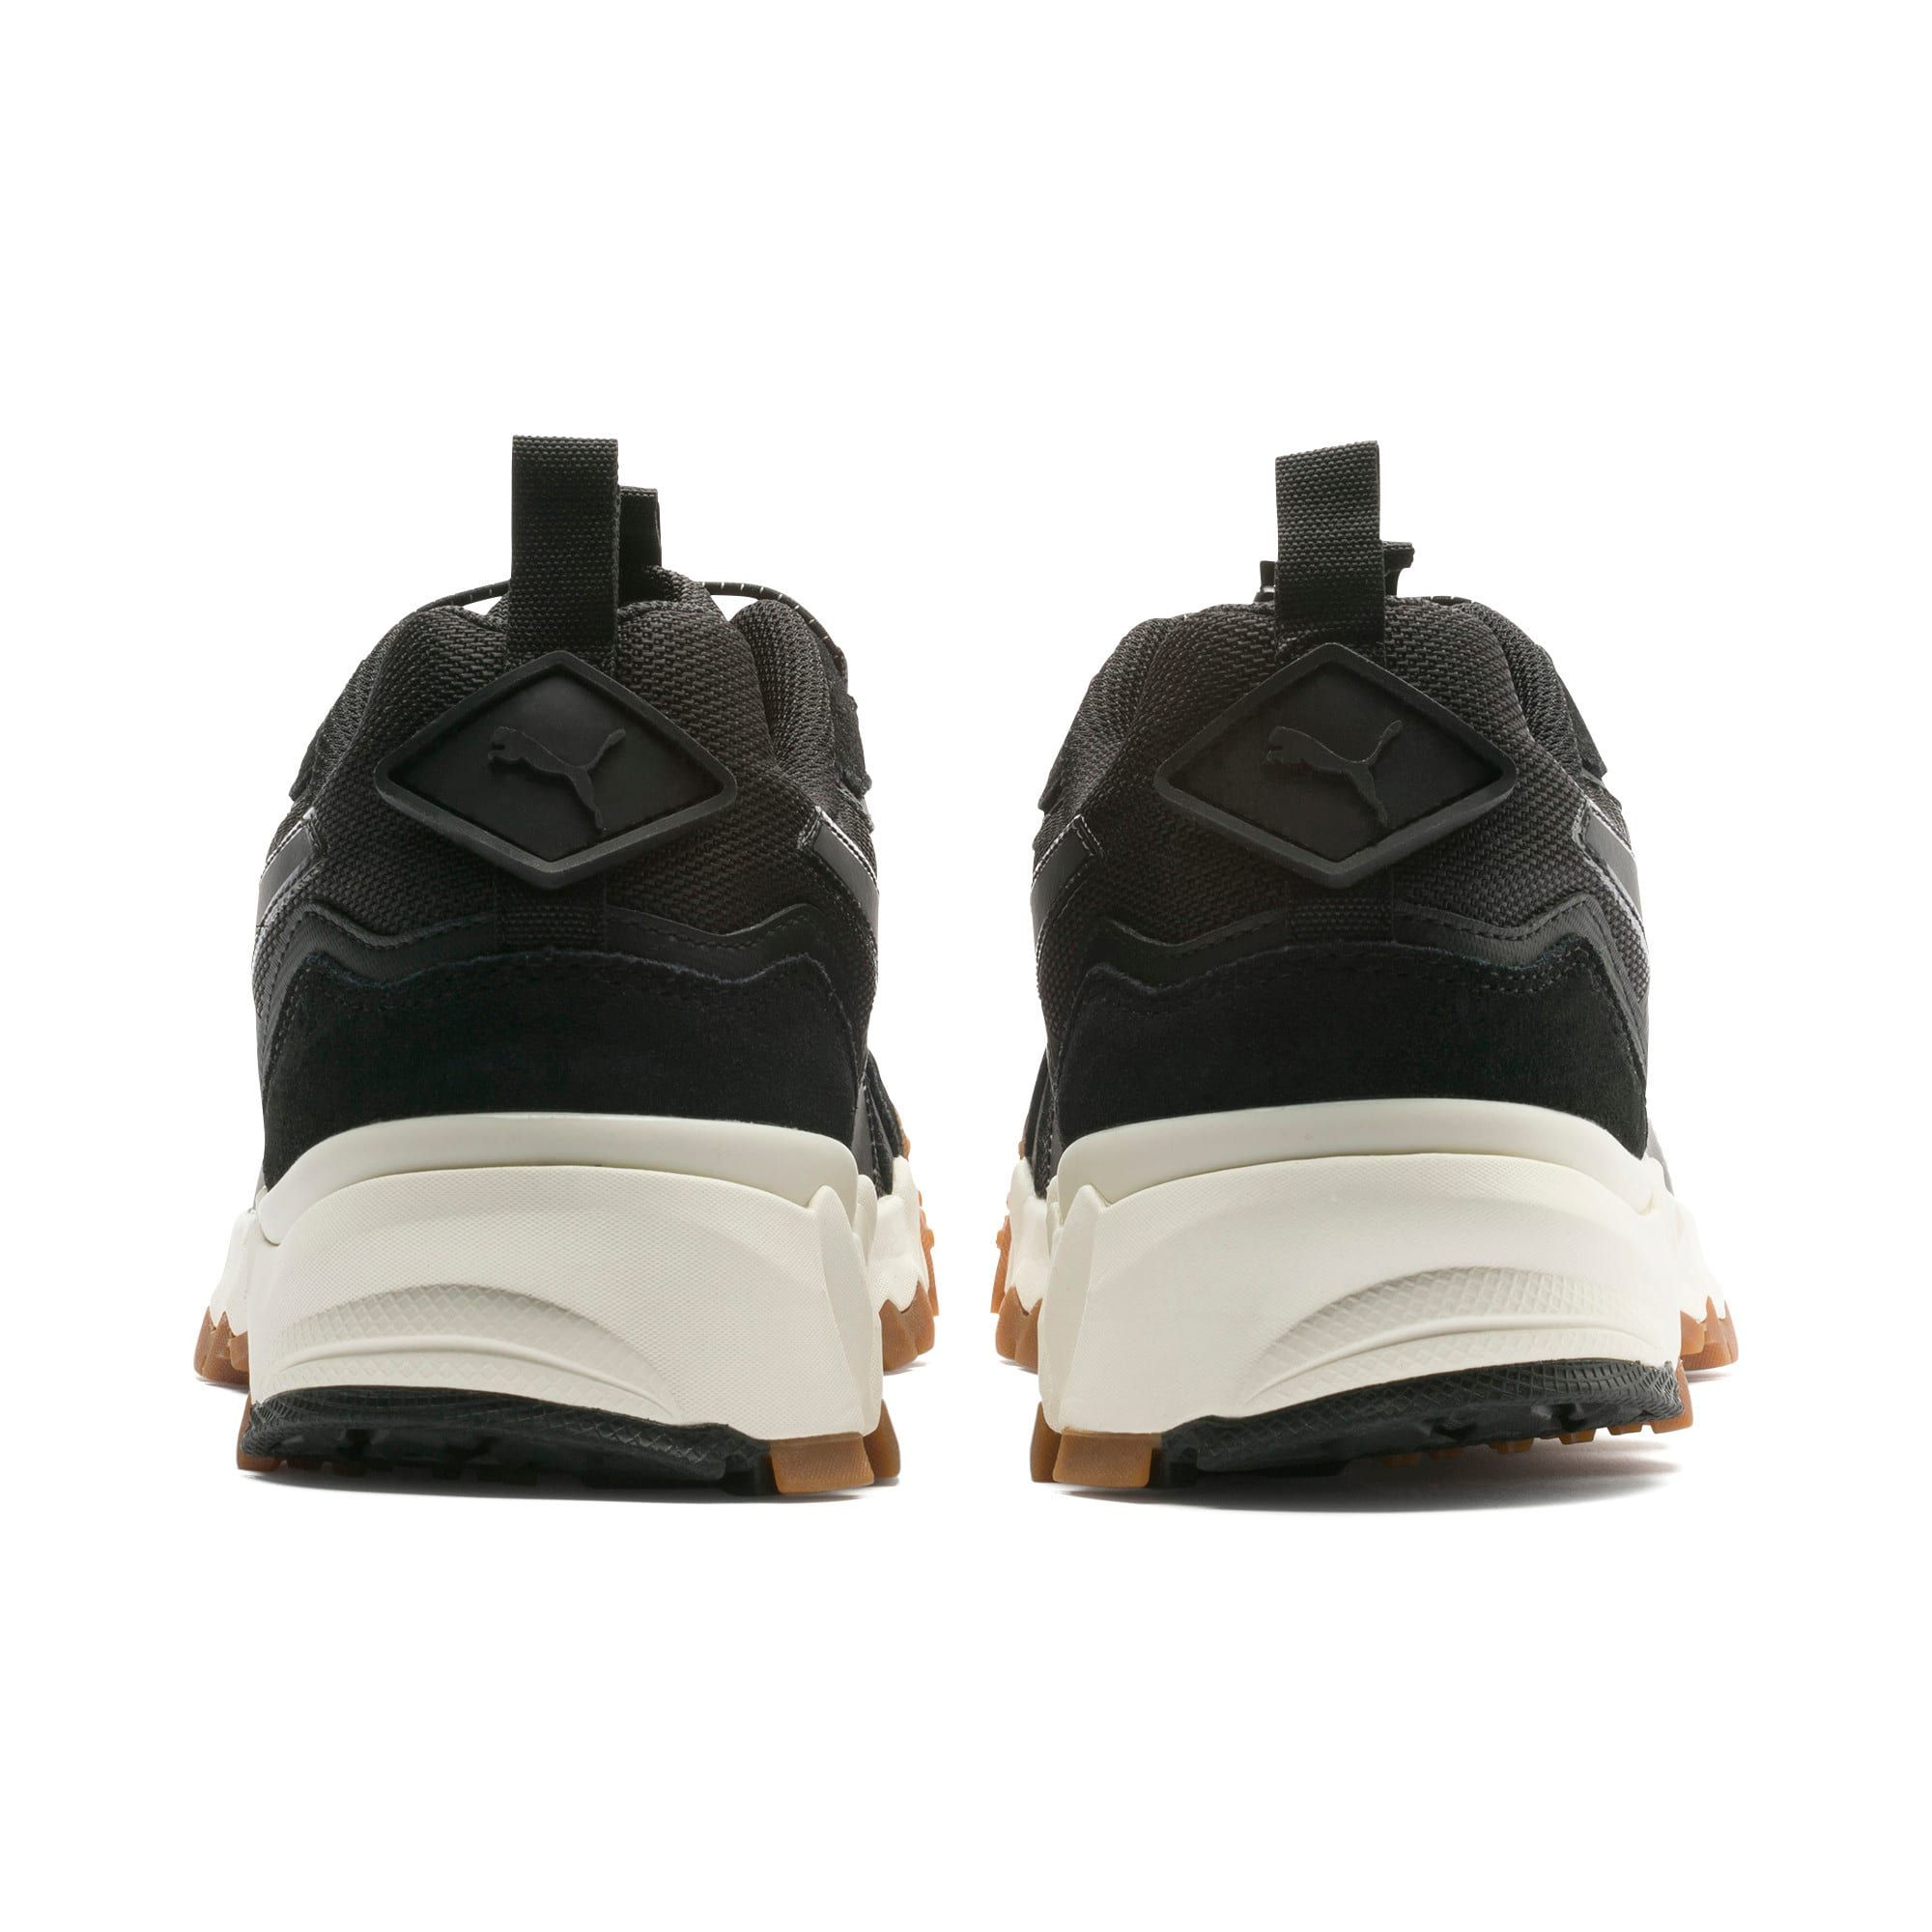 Photo of Trailfox MTS-Water running shoe | Puma Black-Whisper White-Gum | PUMA Saint Nicholas Day | PUMA France